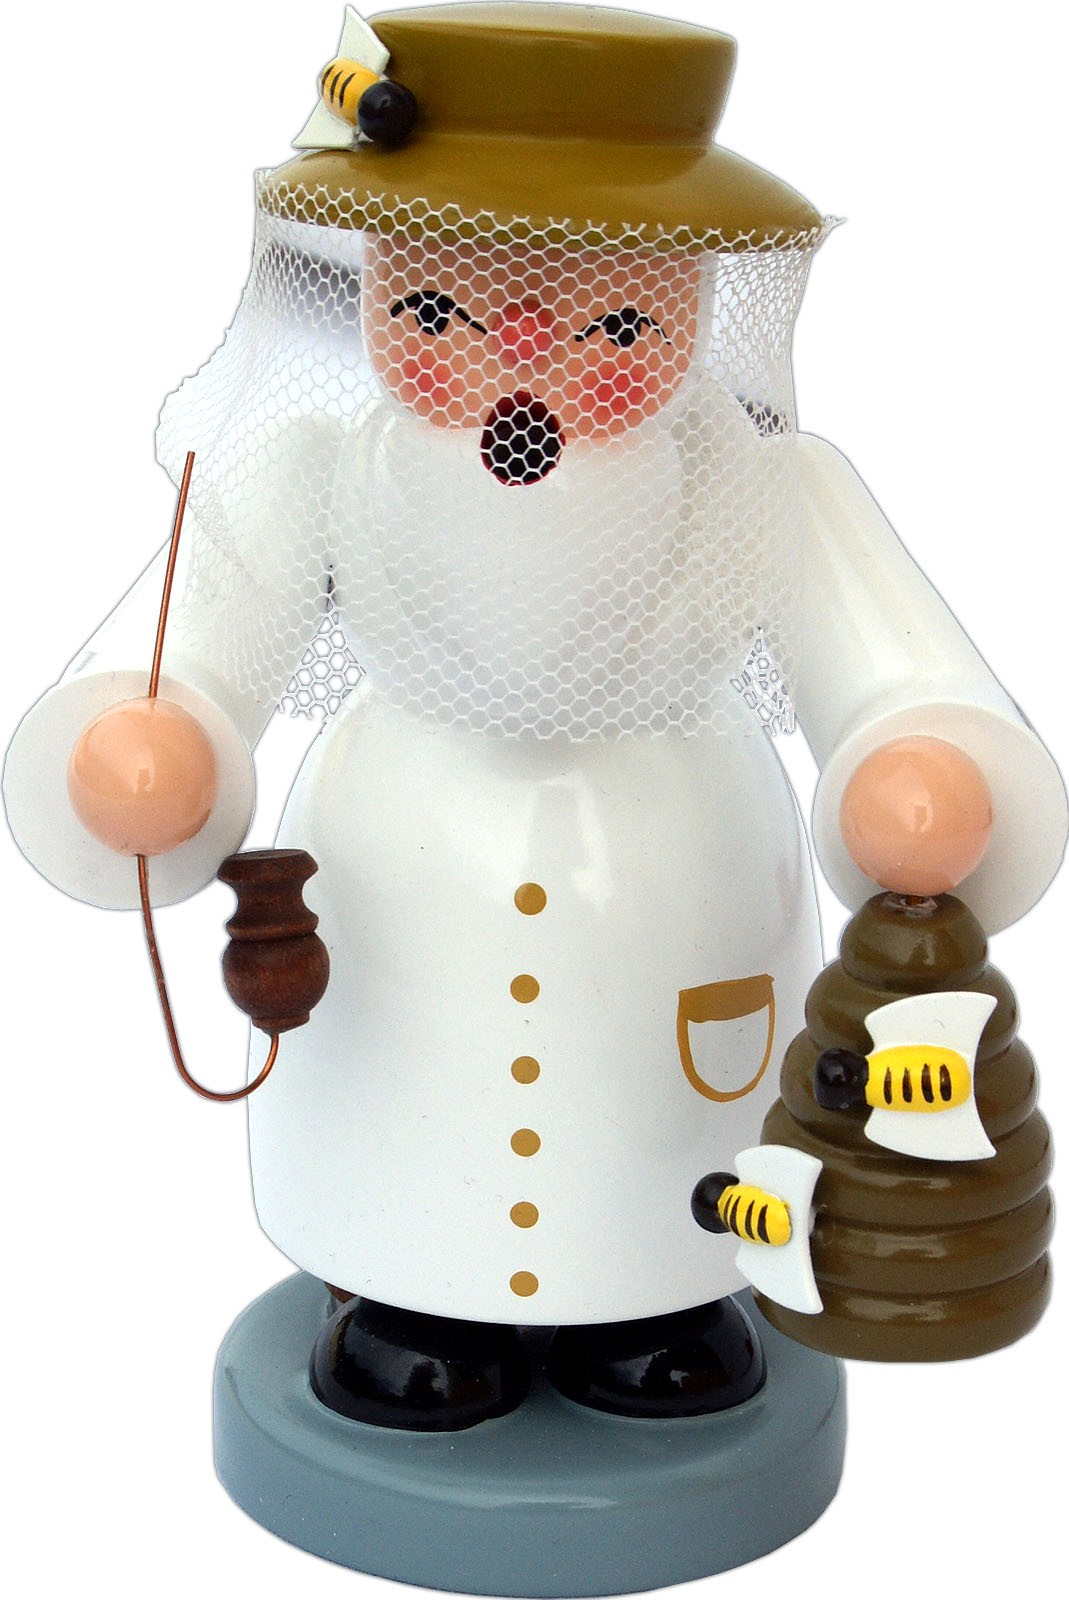 incense smoker, beekeeper